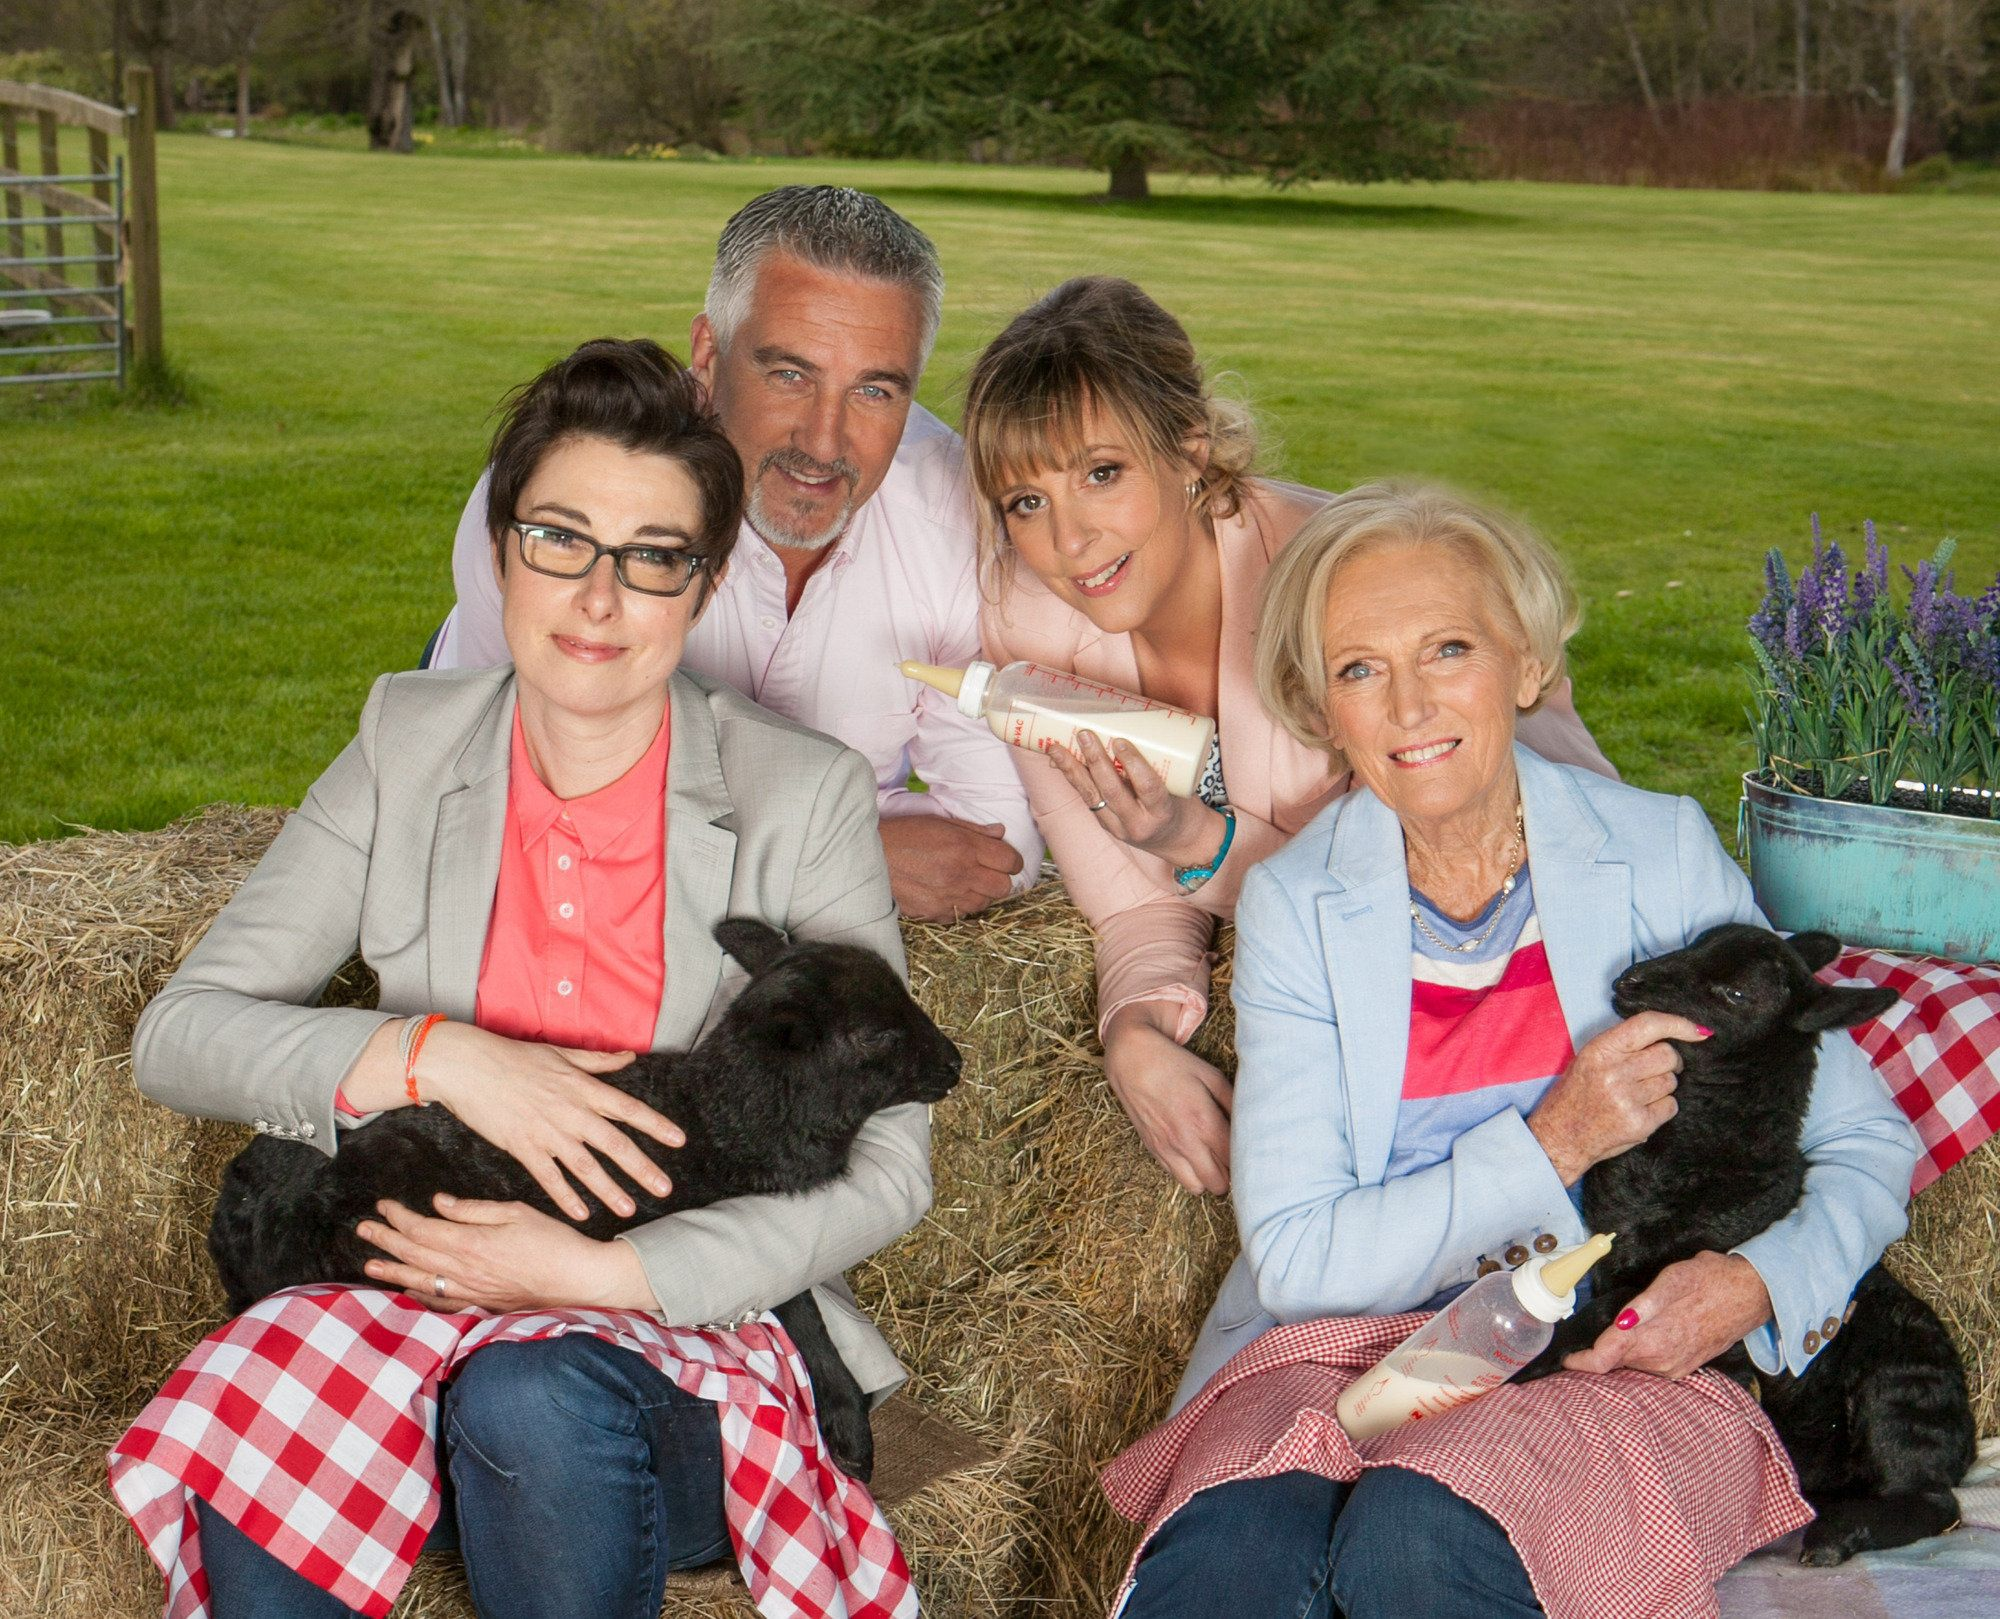 Paul Hollywood is the only star who will move with 'Bake Off' to Channel